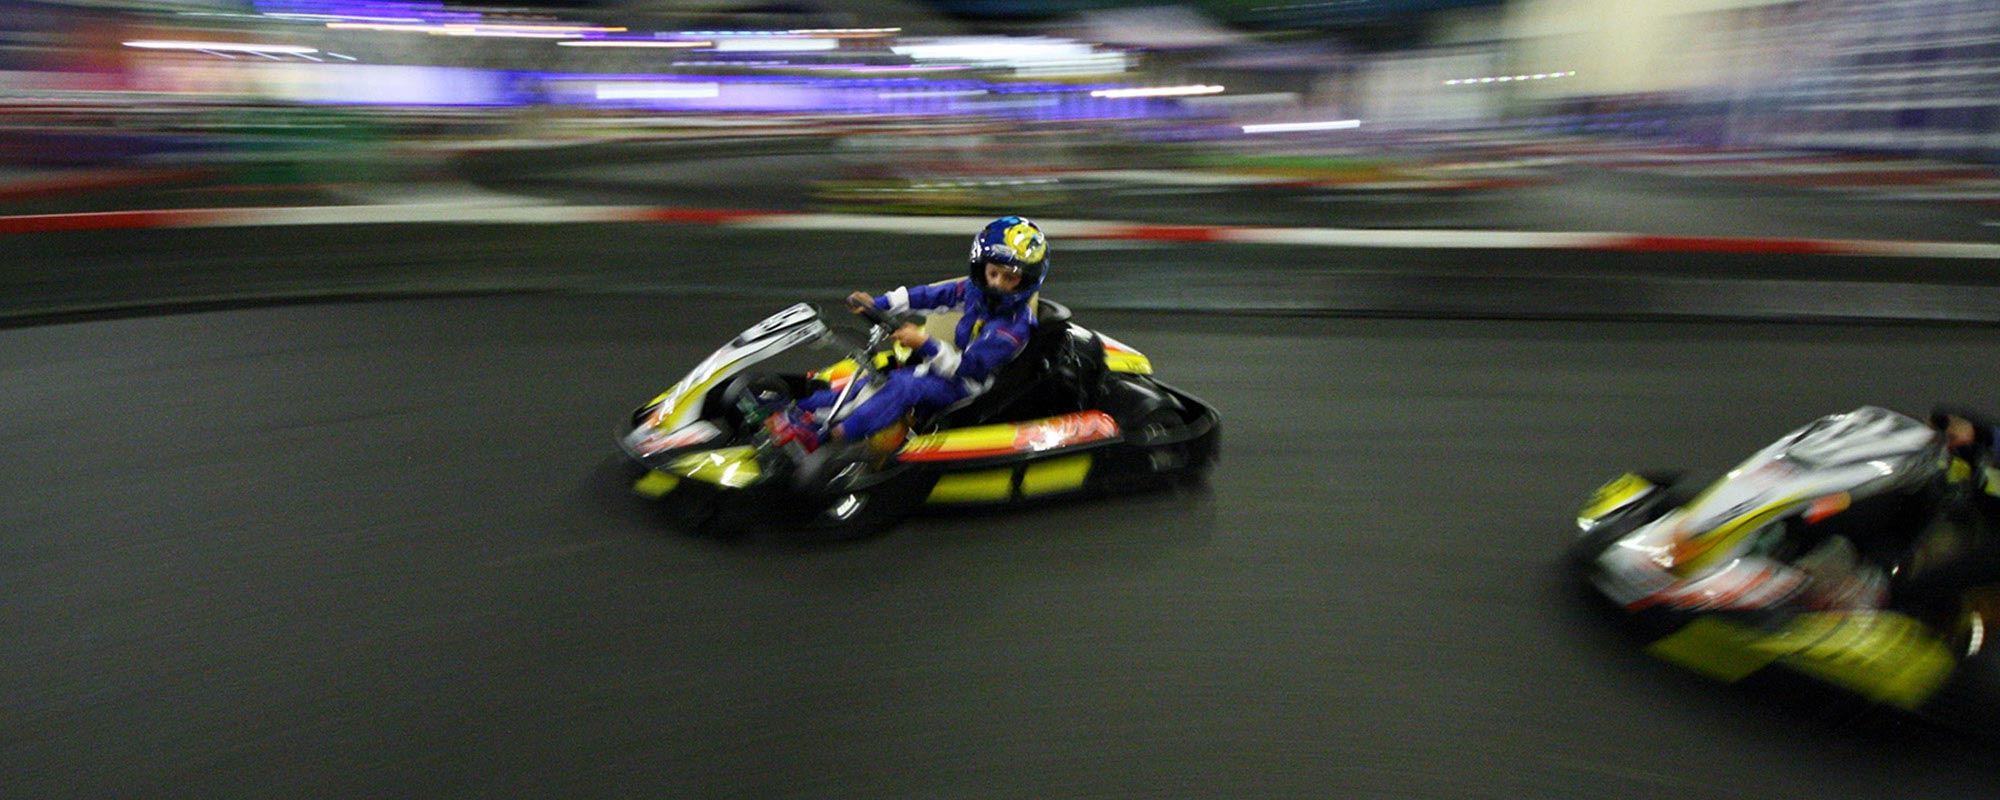 ebafkc-juniorkarting-2000x800-18